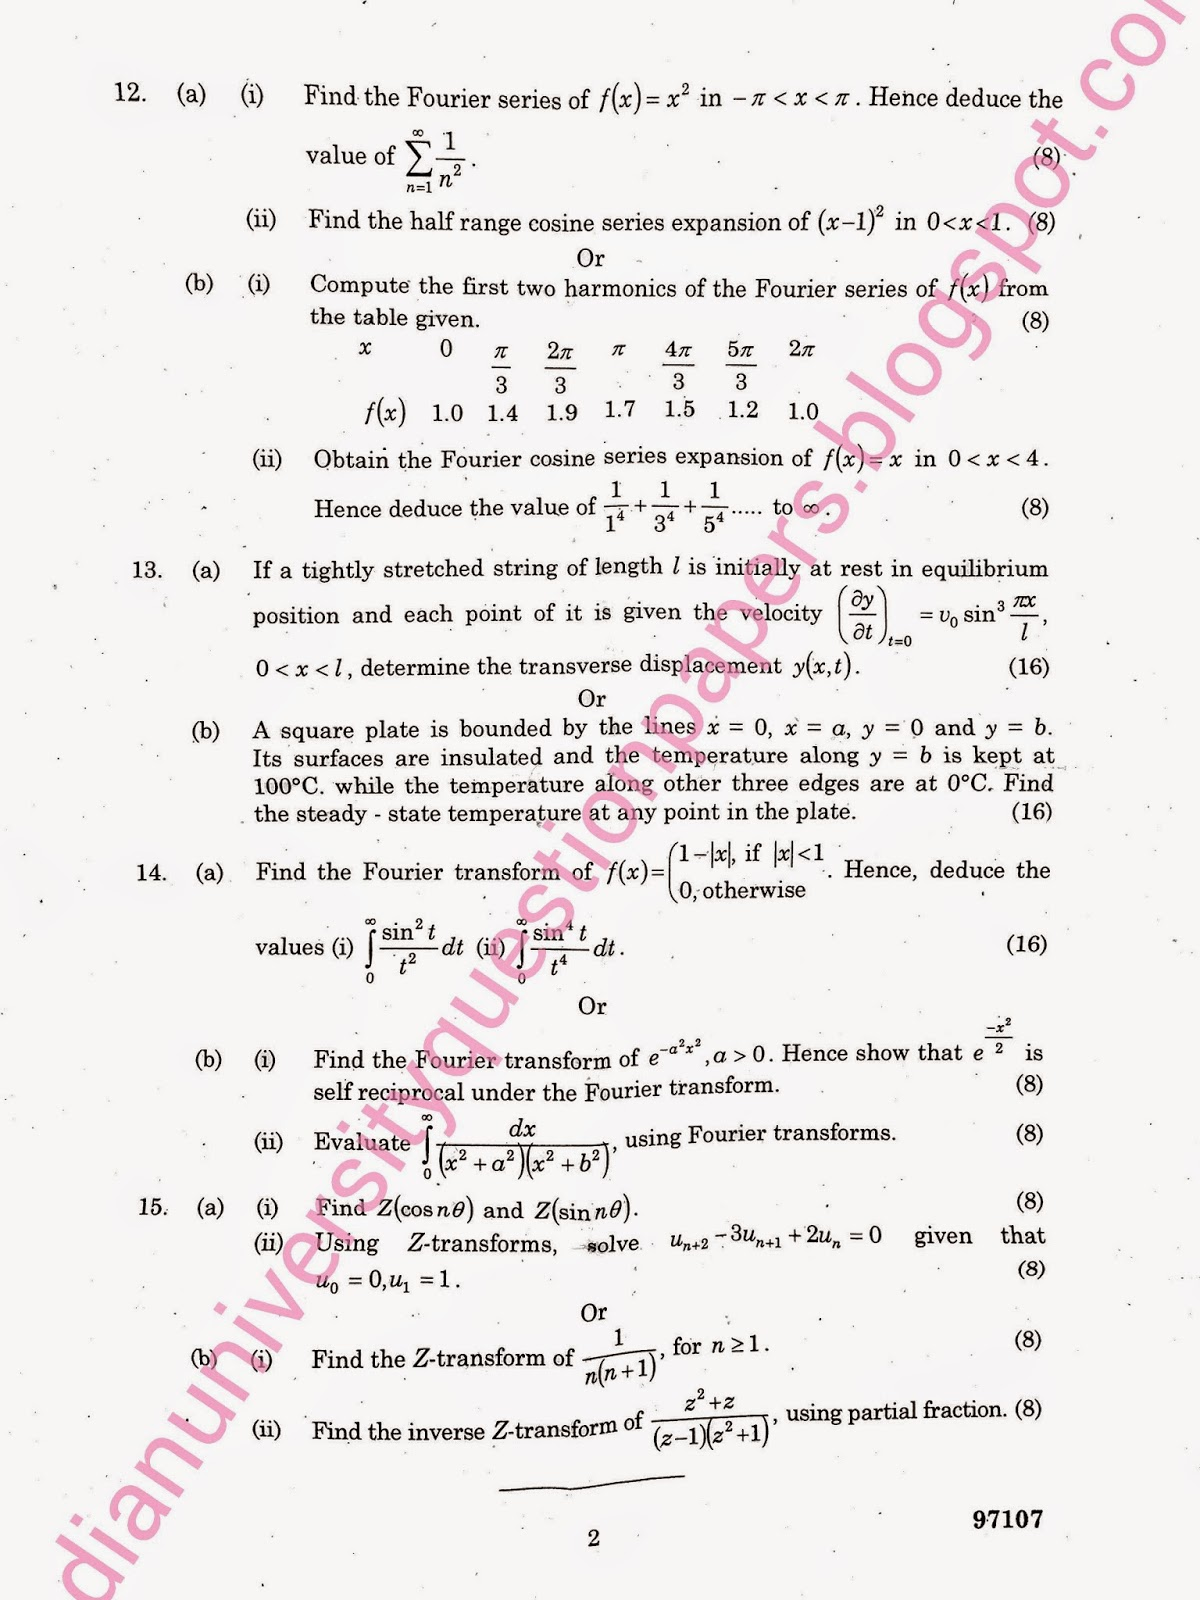 thesis on partial differential equations X partial differential equations legendre polynomials and bessel functions the specific topics to be studied and approximate number of lectures.